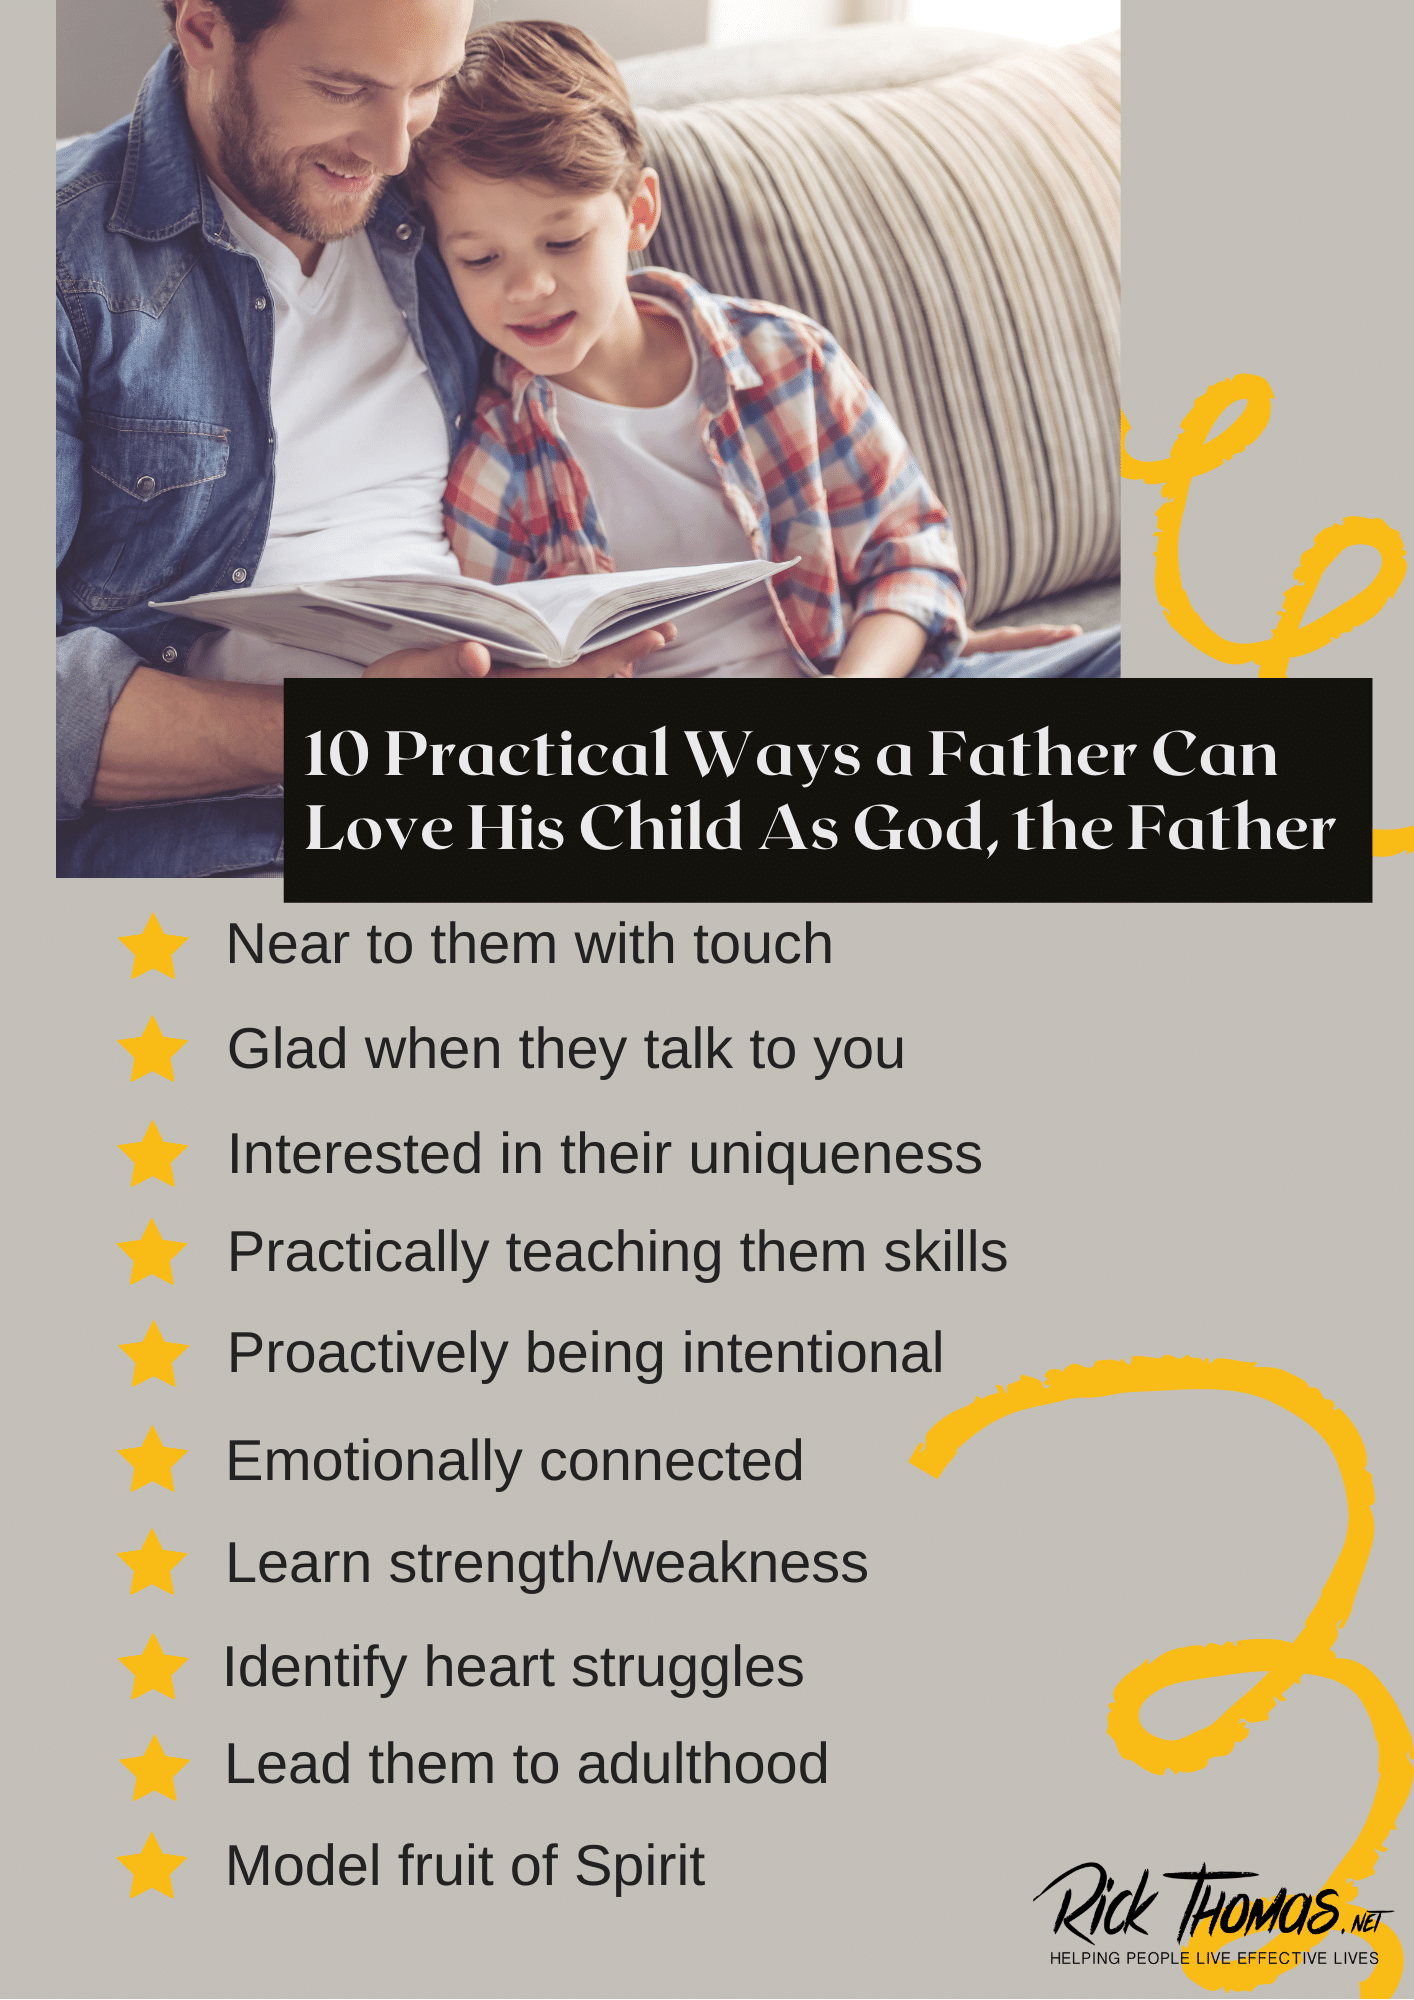 10 Practical Ways a Father Can Love His Child As God, the Father